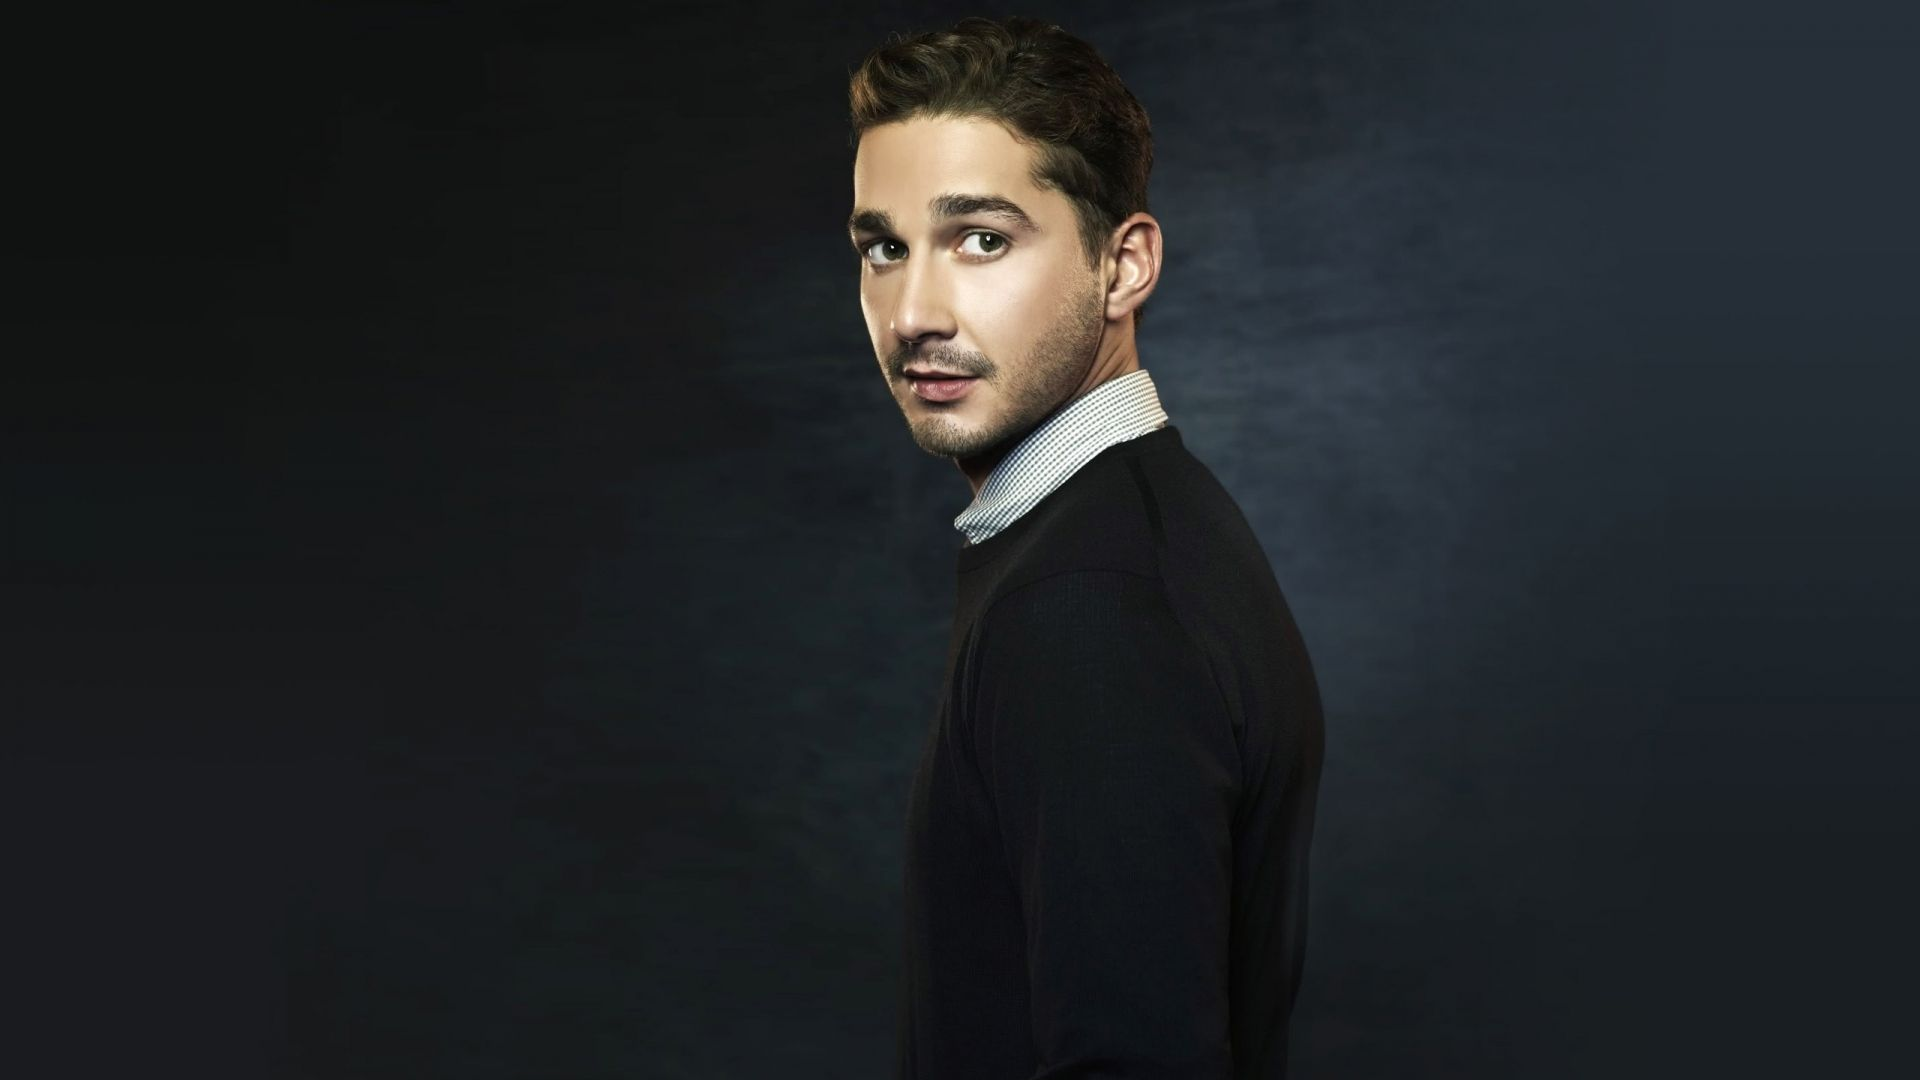 Shia Labeouf Desktop Wallpapers - Get the Newest Collection of Shia Labeouf Desktop Wallpapers for your Desktop PCs, Cell Phones and Tablets Only at WallpapersTunnel.com.